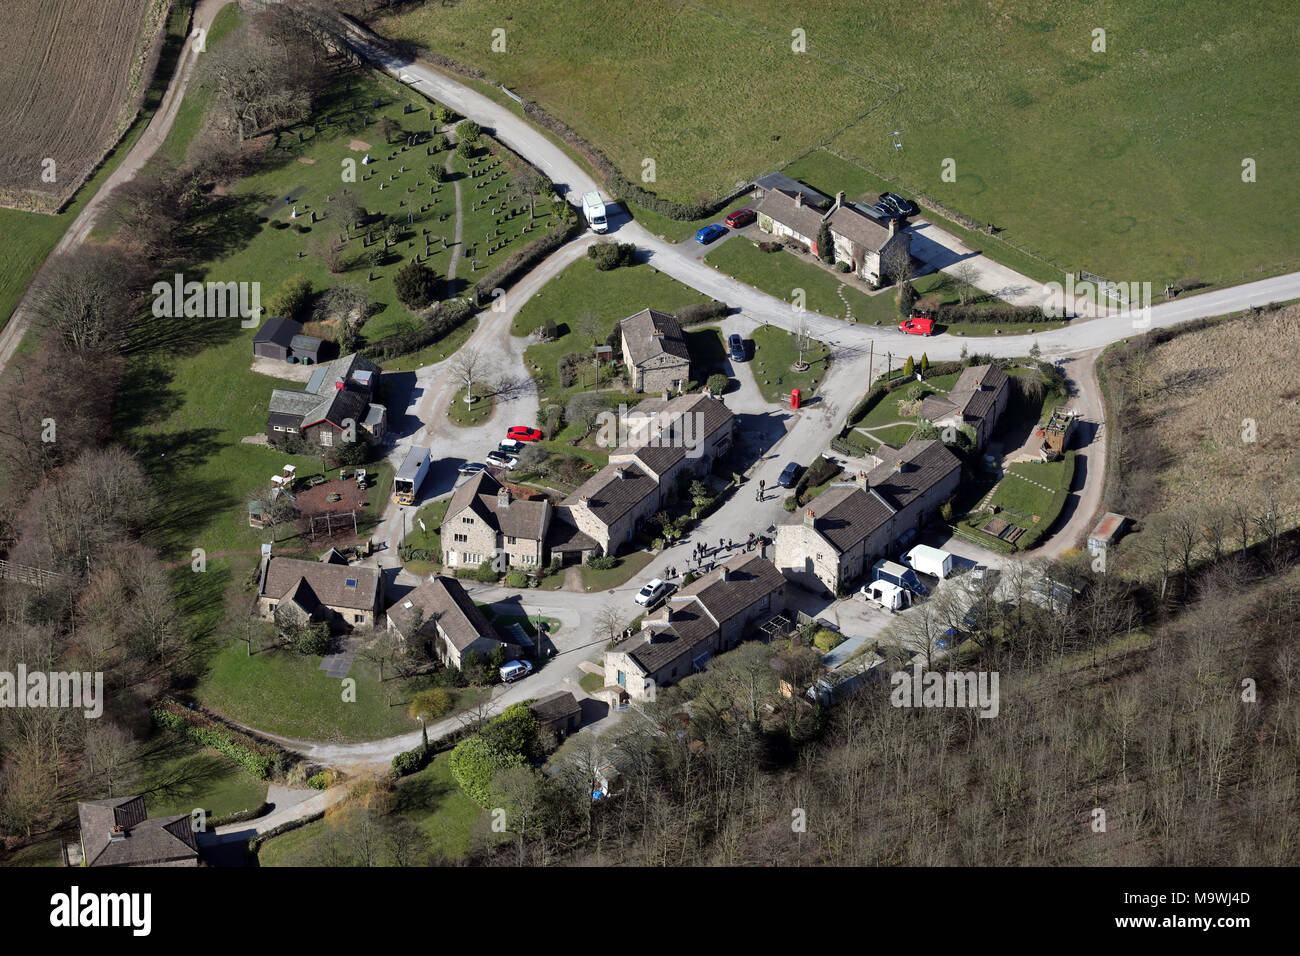 aerial view of the Emmerdale TV location set - Stock Image